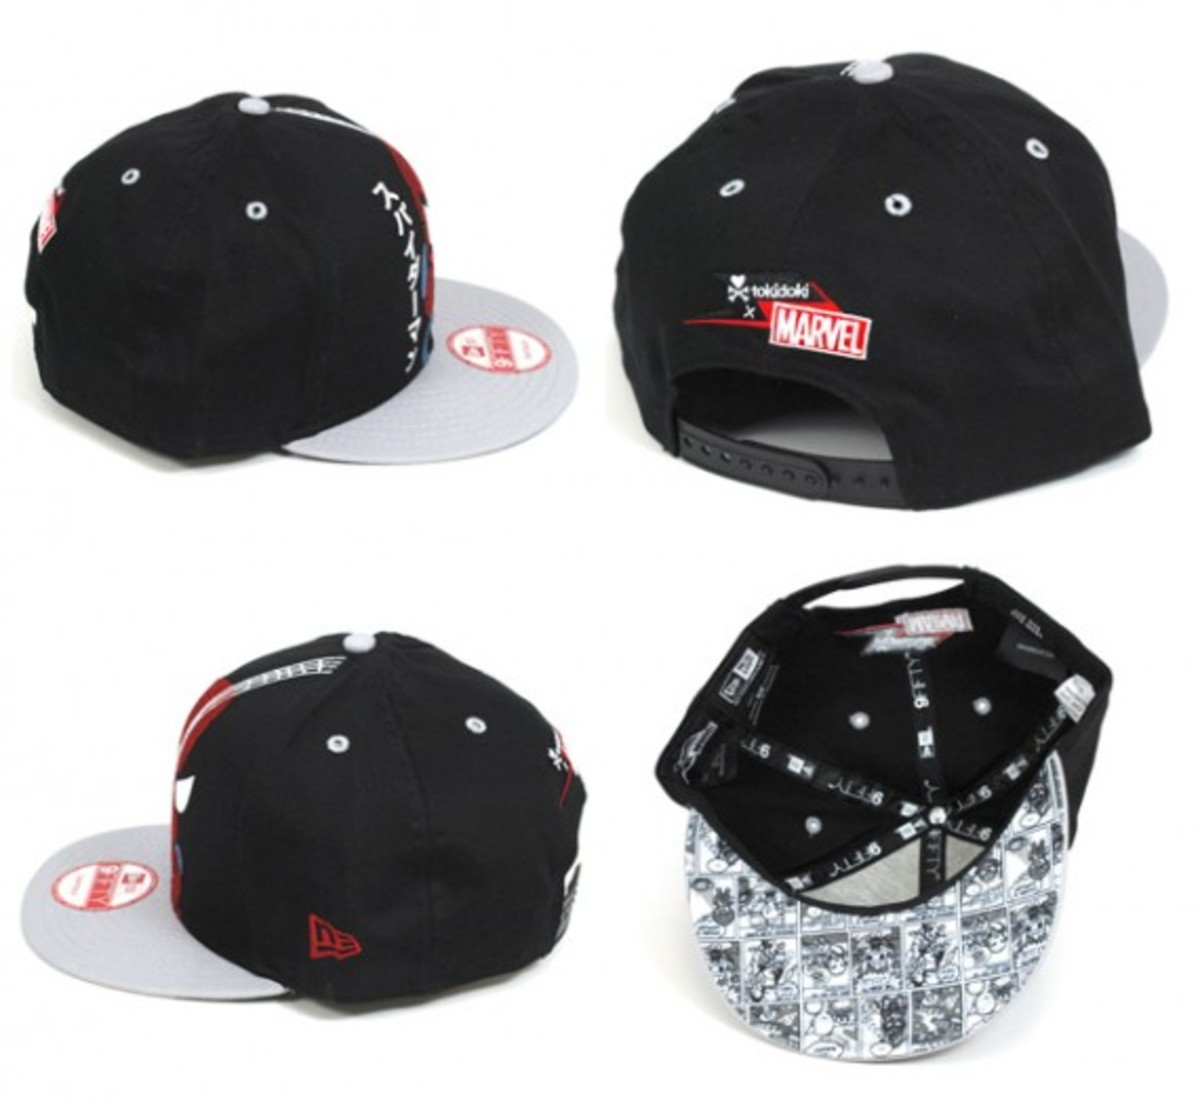 tokidoki-marvel-new-era-9fifty-snapback-cap-collection-02